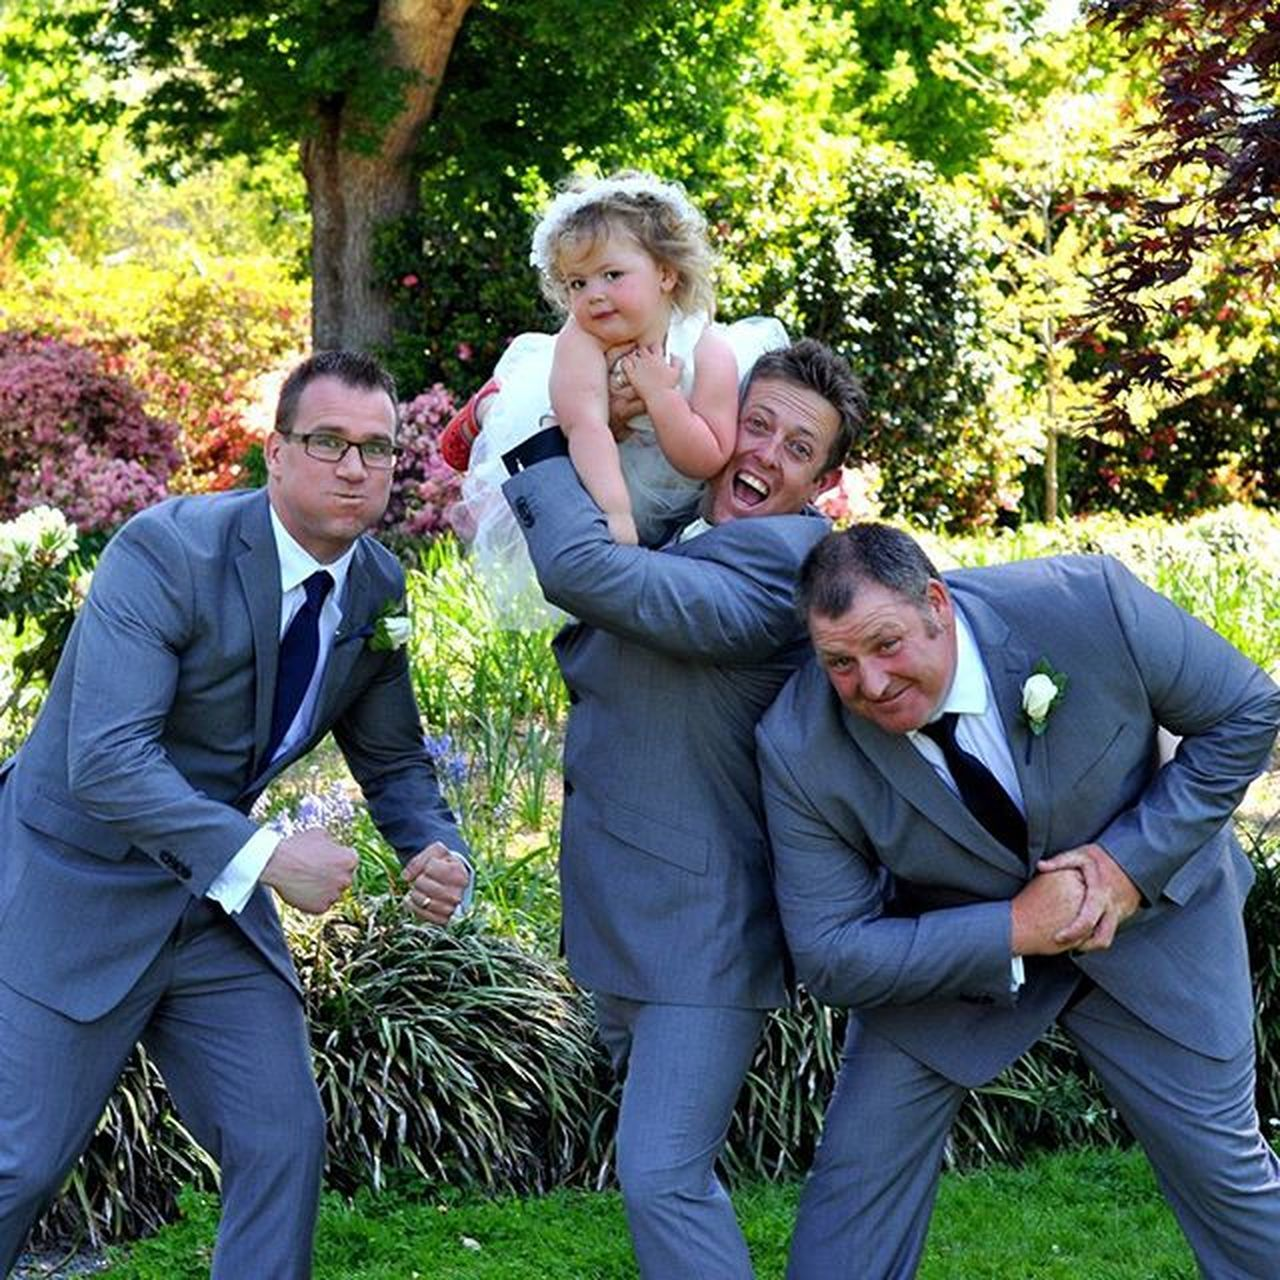 The official joining of a family meant to be has to be one of the most blessed experiences that can be shared with friends and family. What an amazing day. Weekend Wedding Weddingday  Nelson Stoke Newzealand NZ Marriage  Ido Hesaidyes Shesaidyes Love Blessed  Weddingphotography Jaded_kiwi Photography